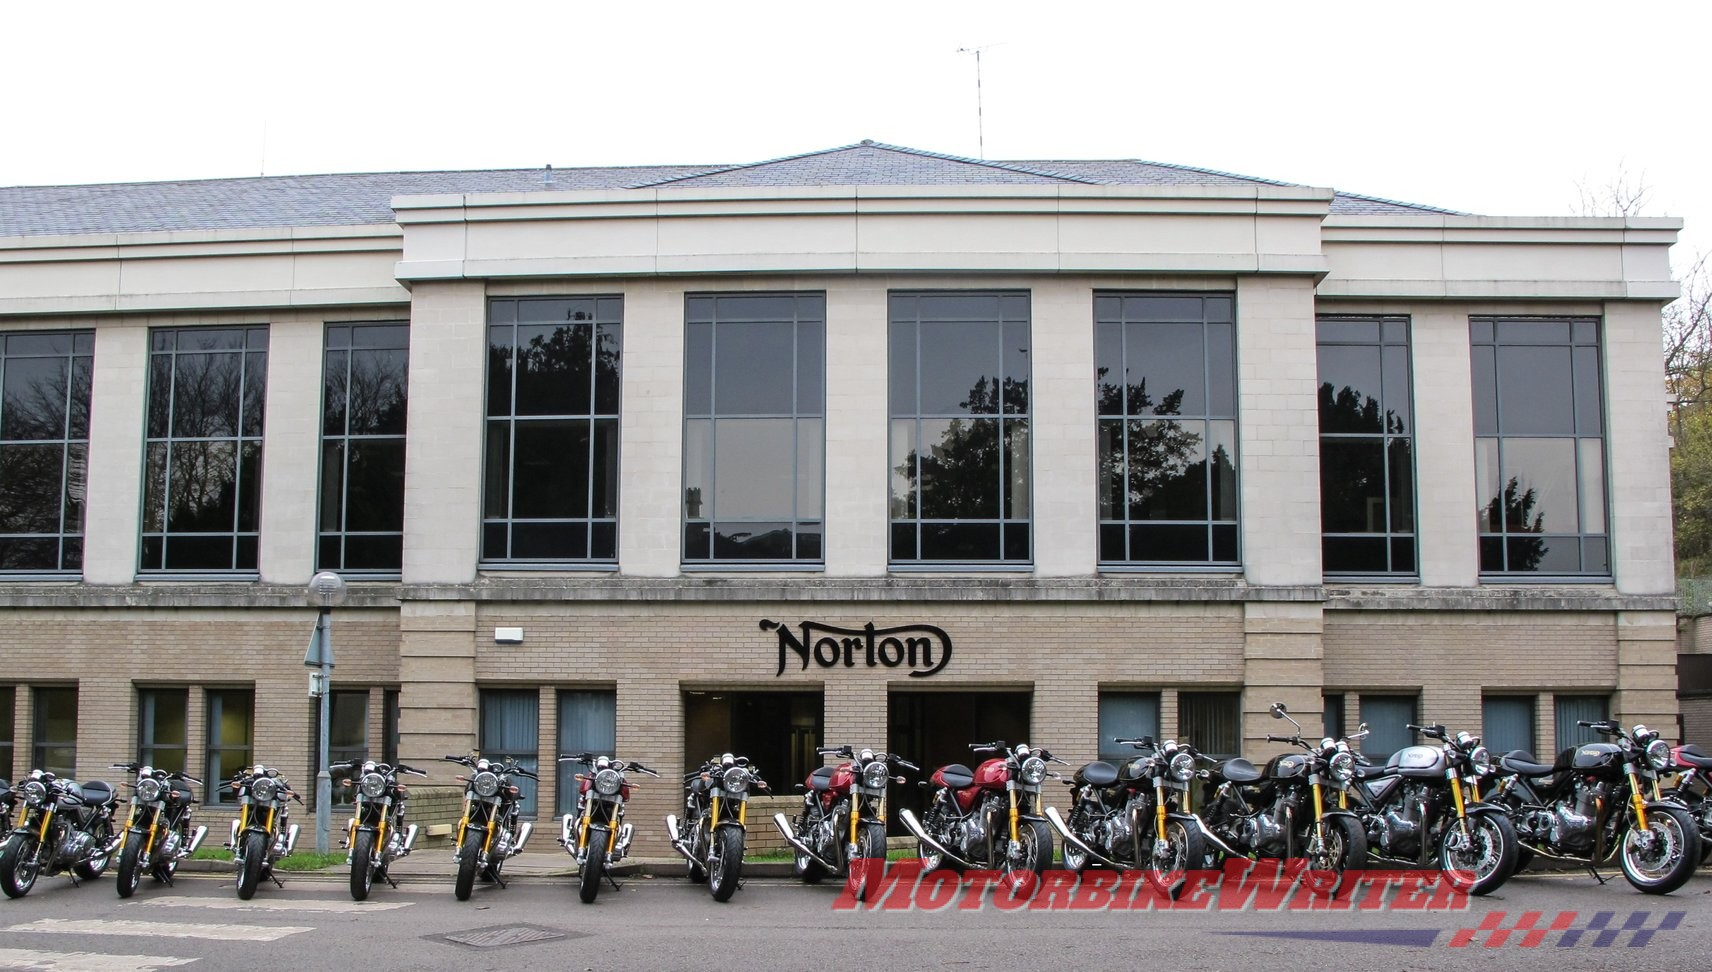 Norton Motorcycles Donington Hall factory crowd